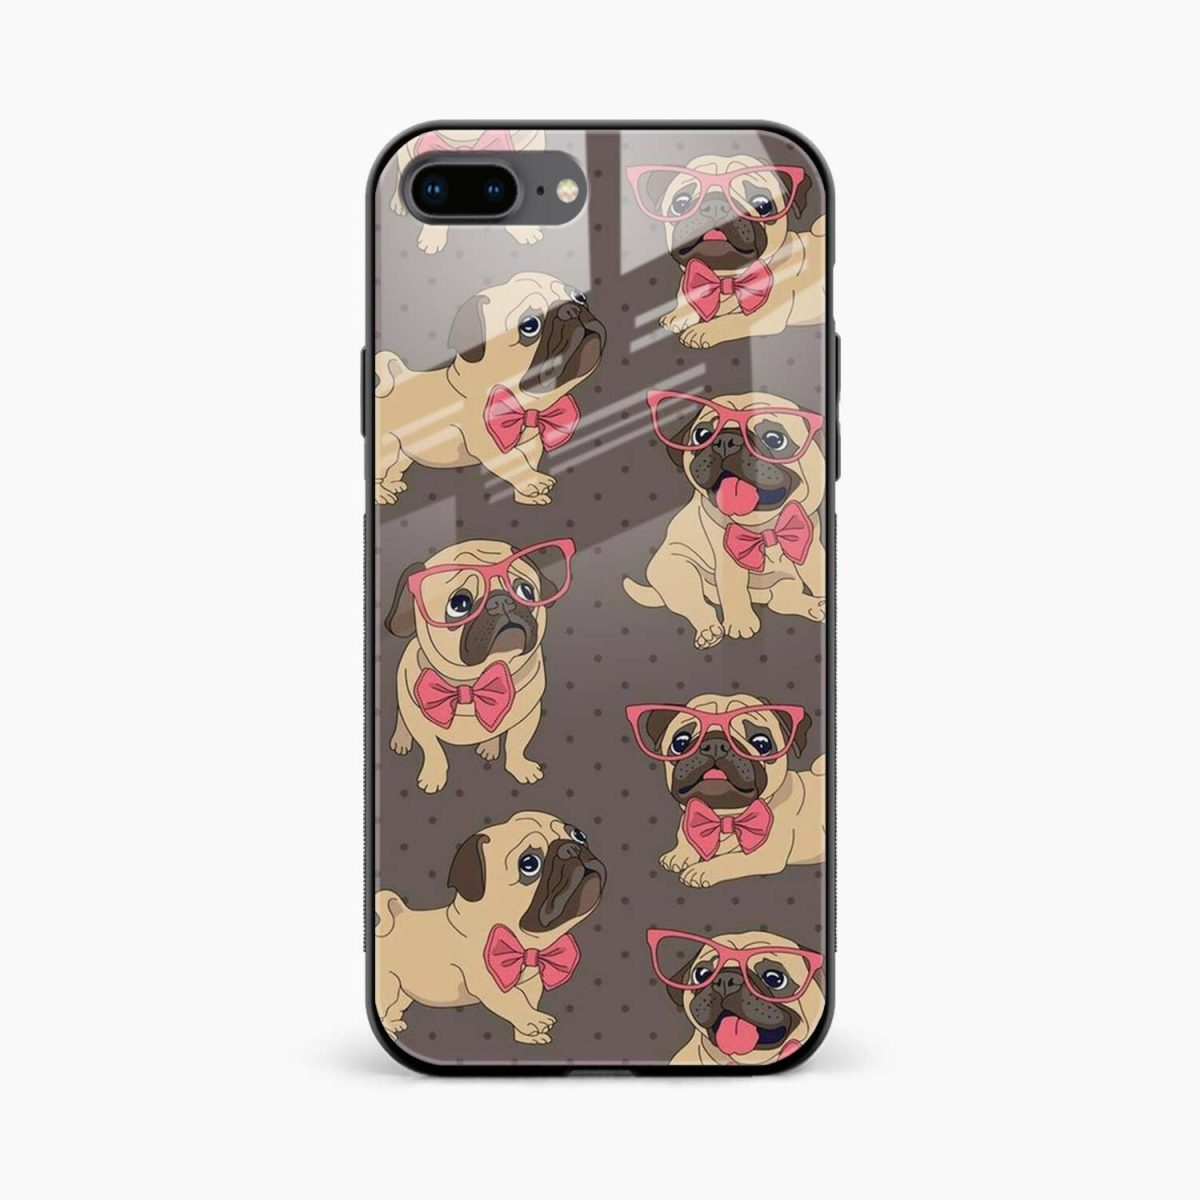 pug cute dog animal pattern diagonal view apple iphone 7 8 plus back cover 2